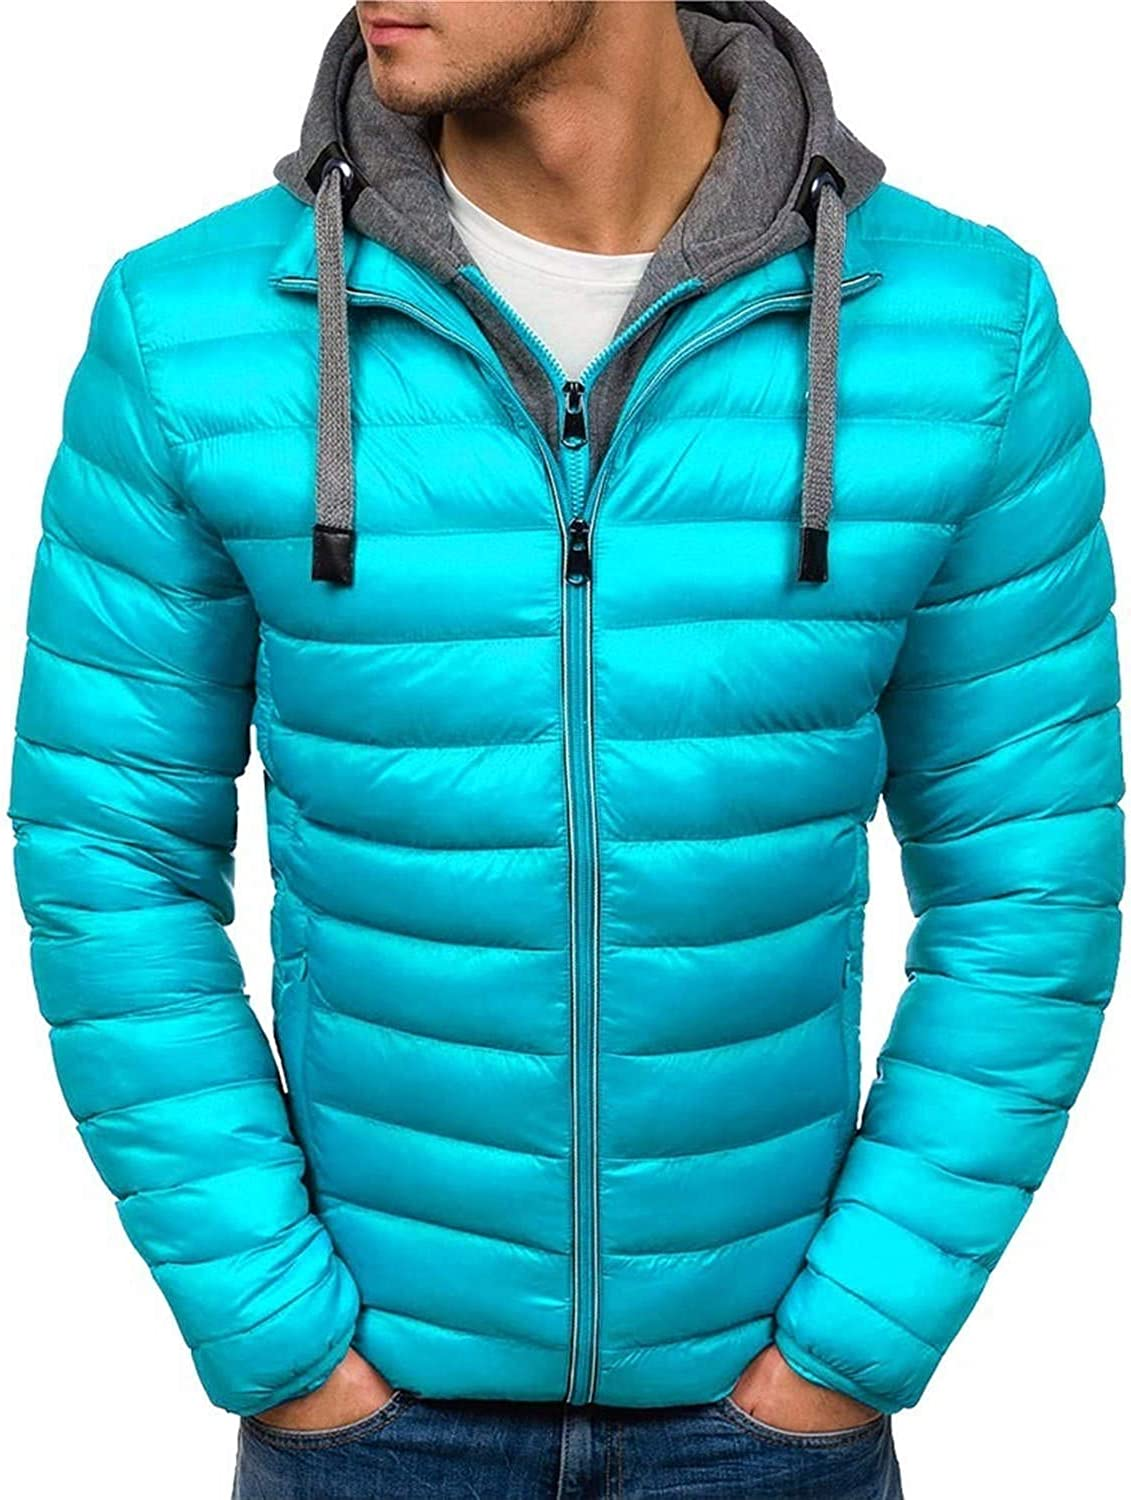 Soluo Men's Thicken Puffer Jacket Insulated Water-Resistant Warm Winter Coat Outerwear with Hood